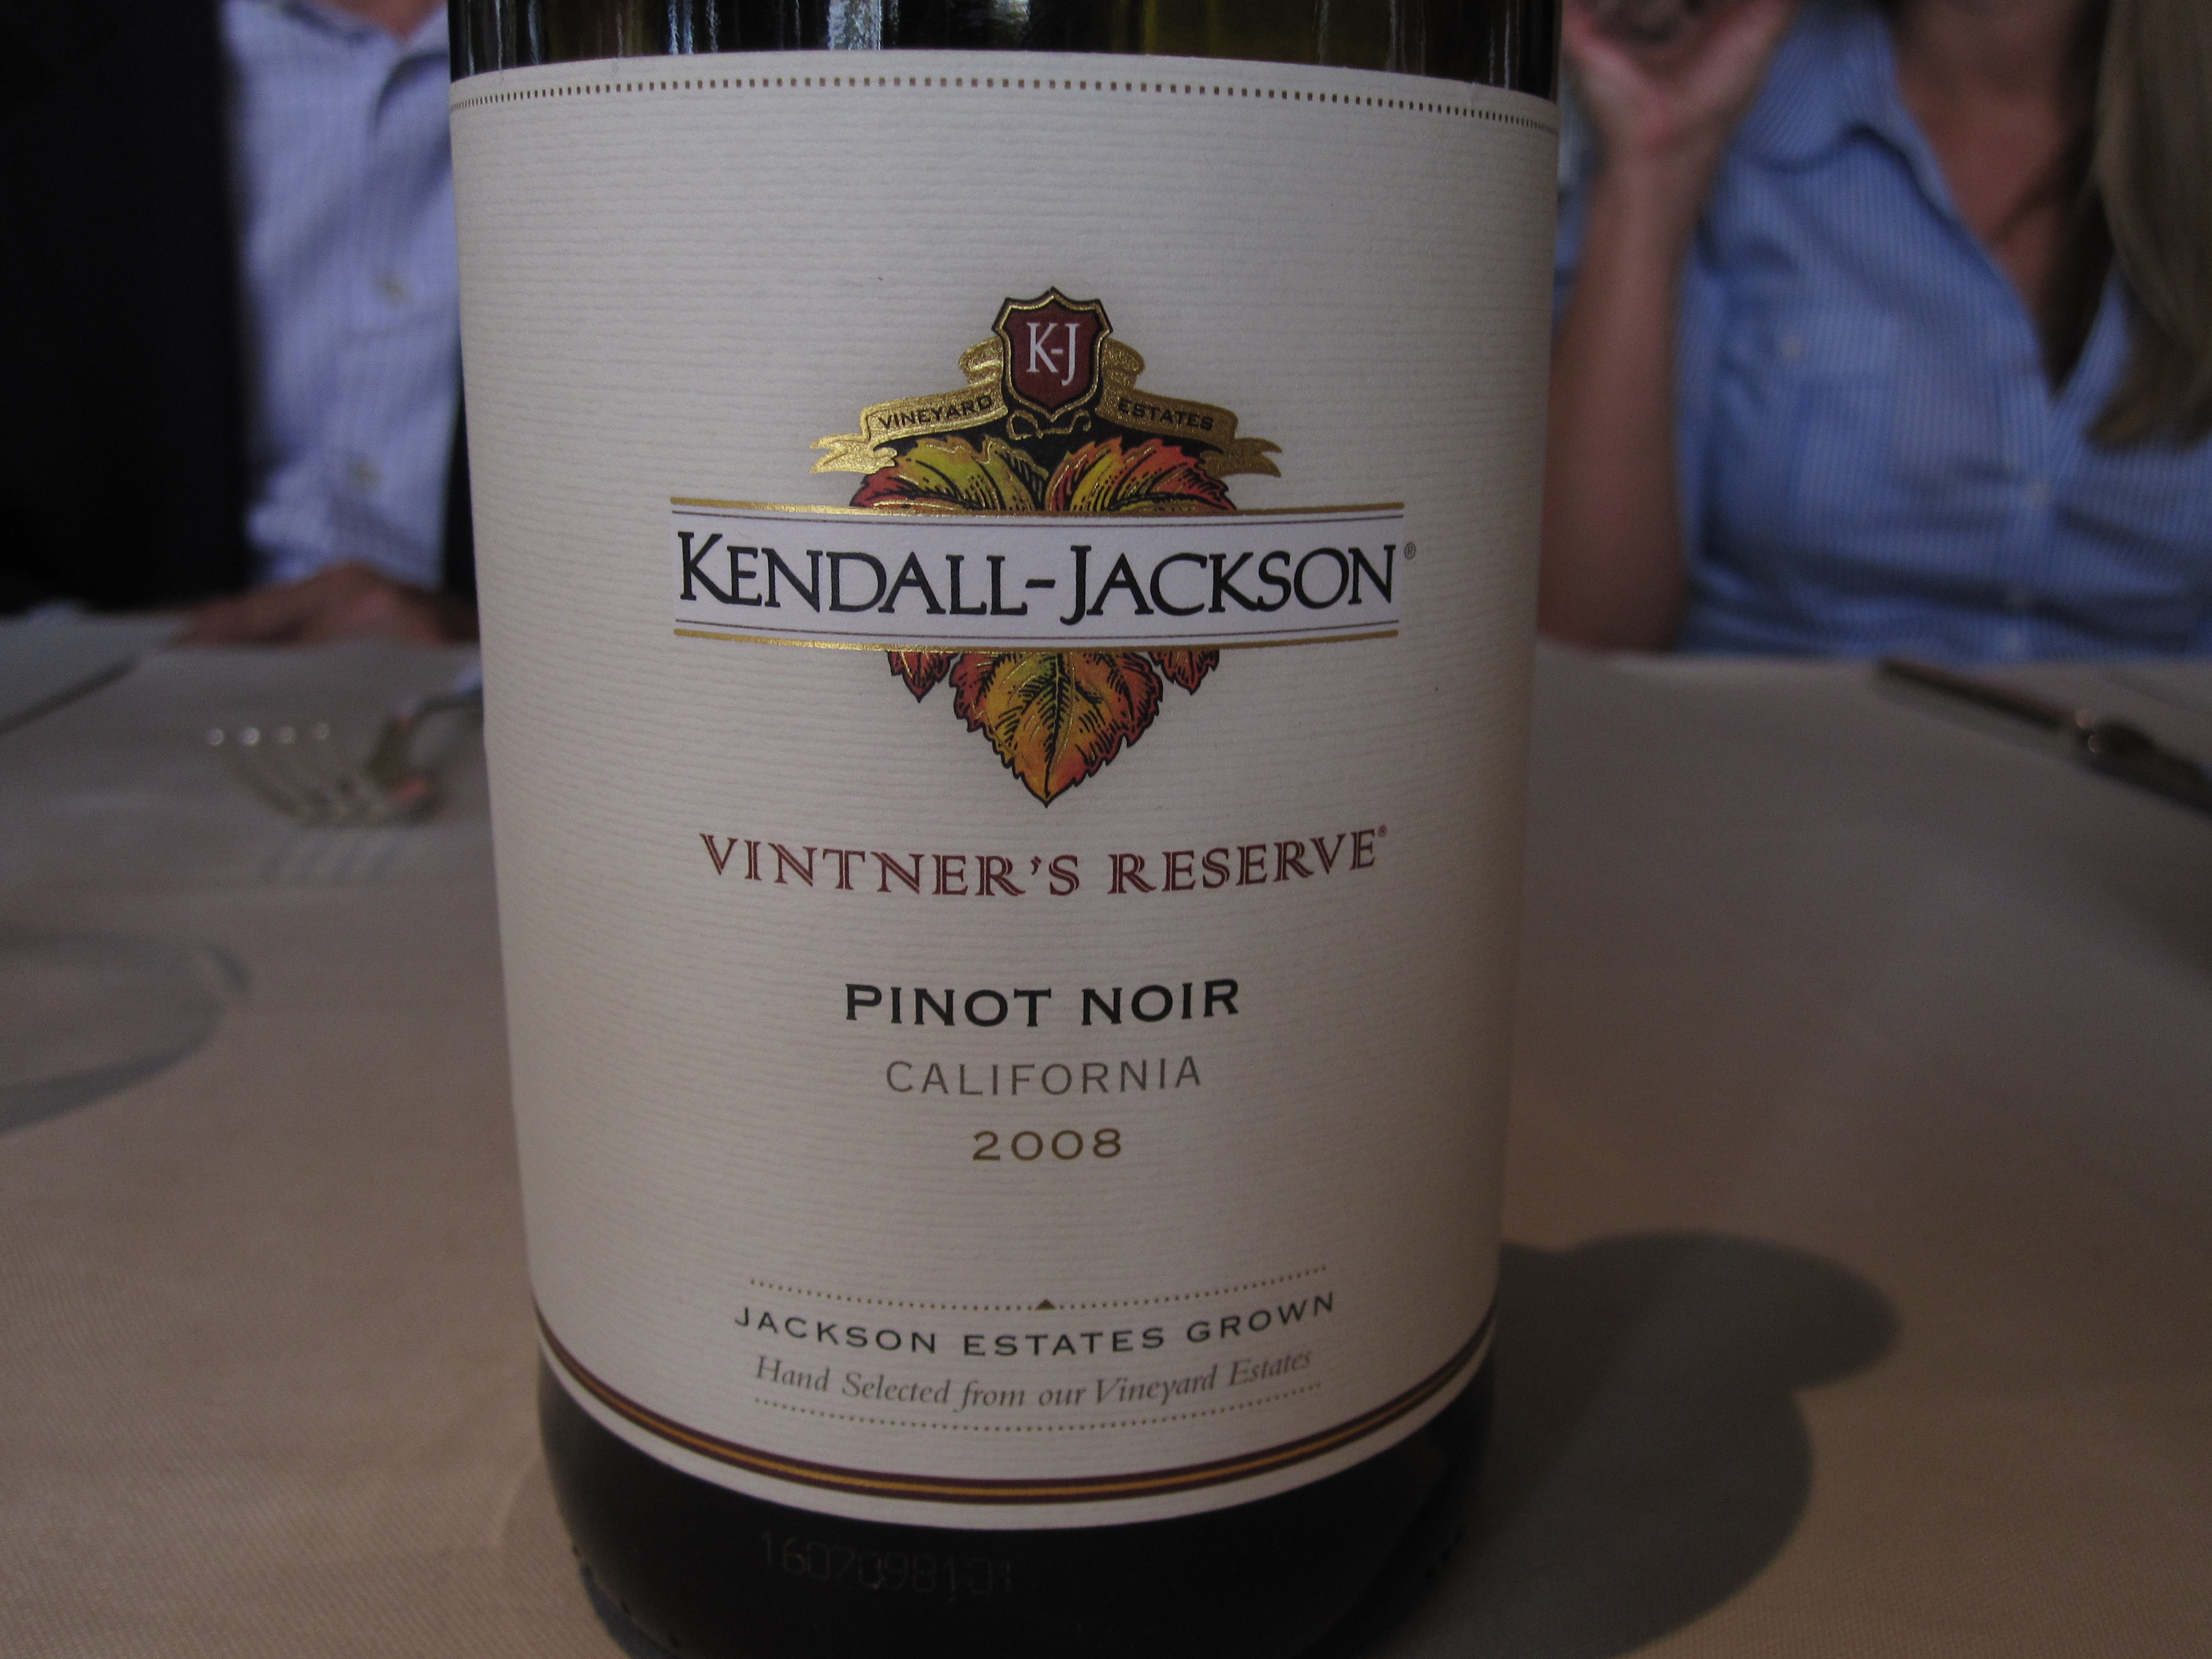 My favorite red was KJ's Vitner's Reserve Pinot Noir.